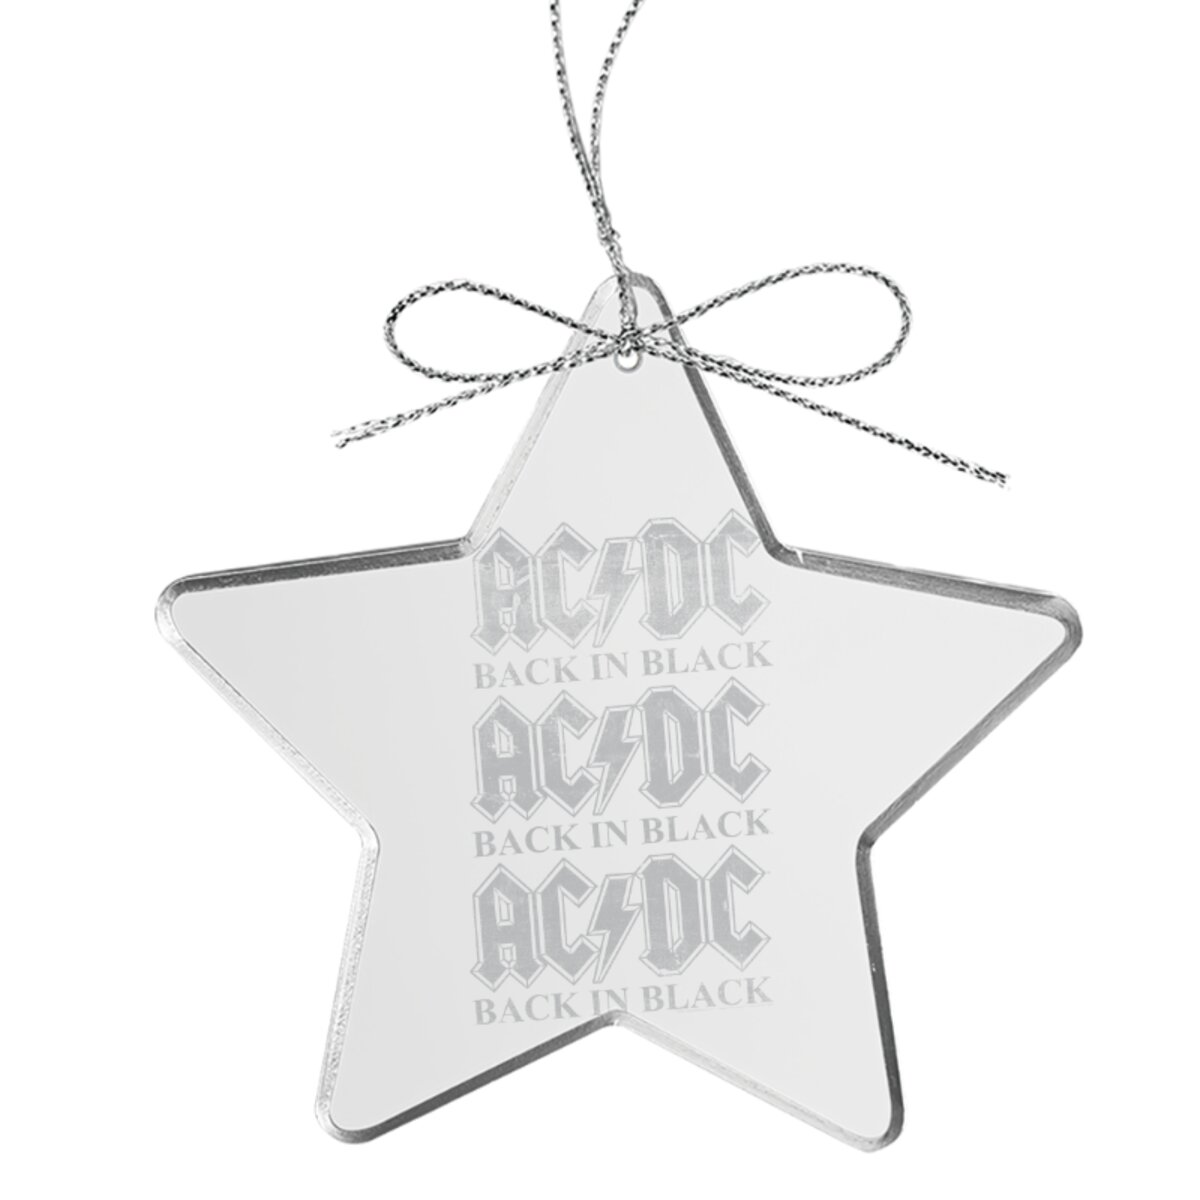 Back In Black Repeat Star Laser-Etched Glass Ornament